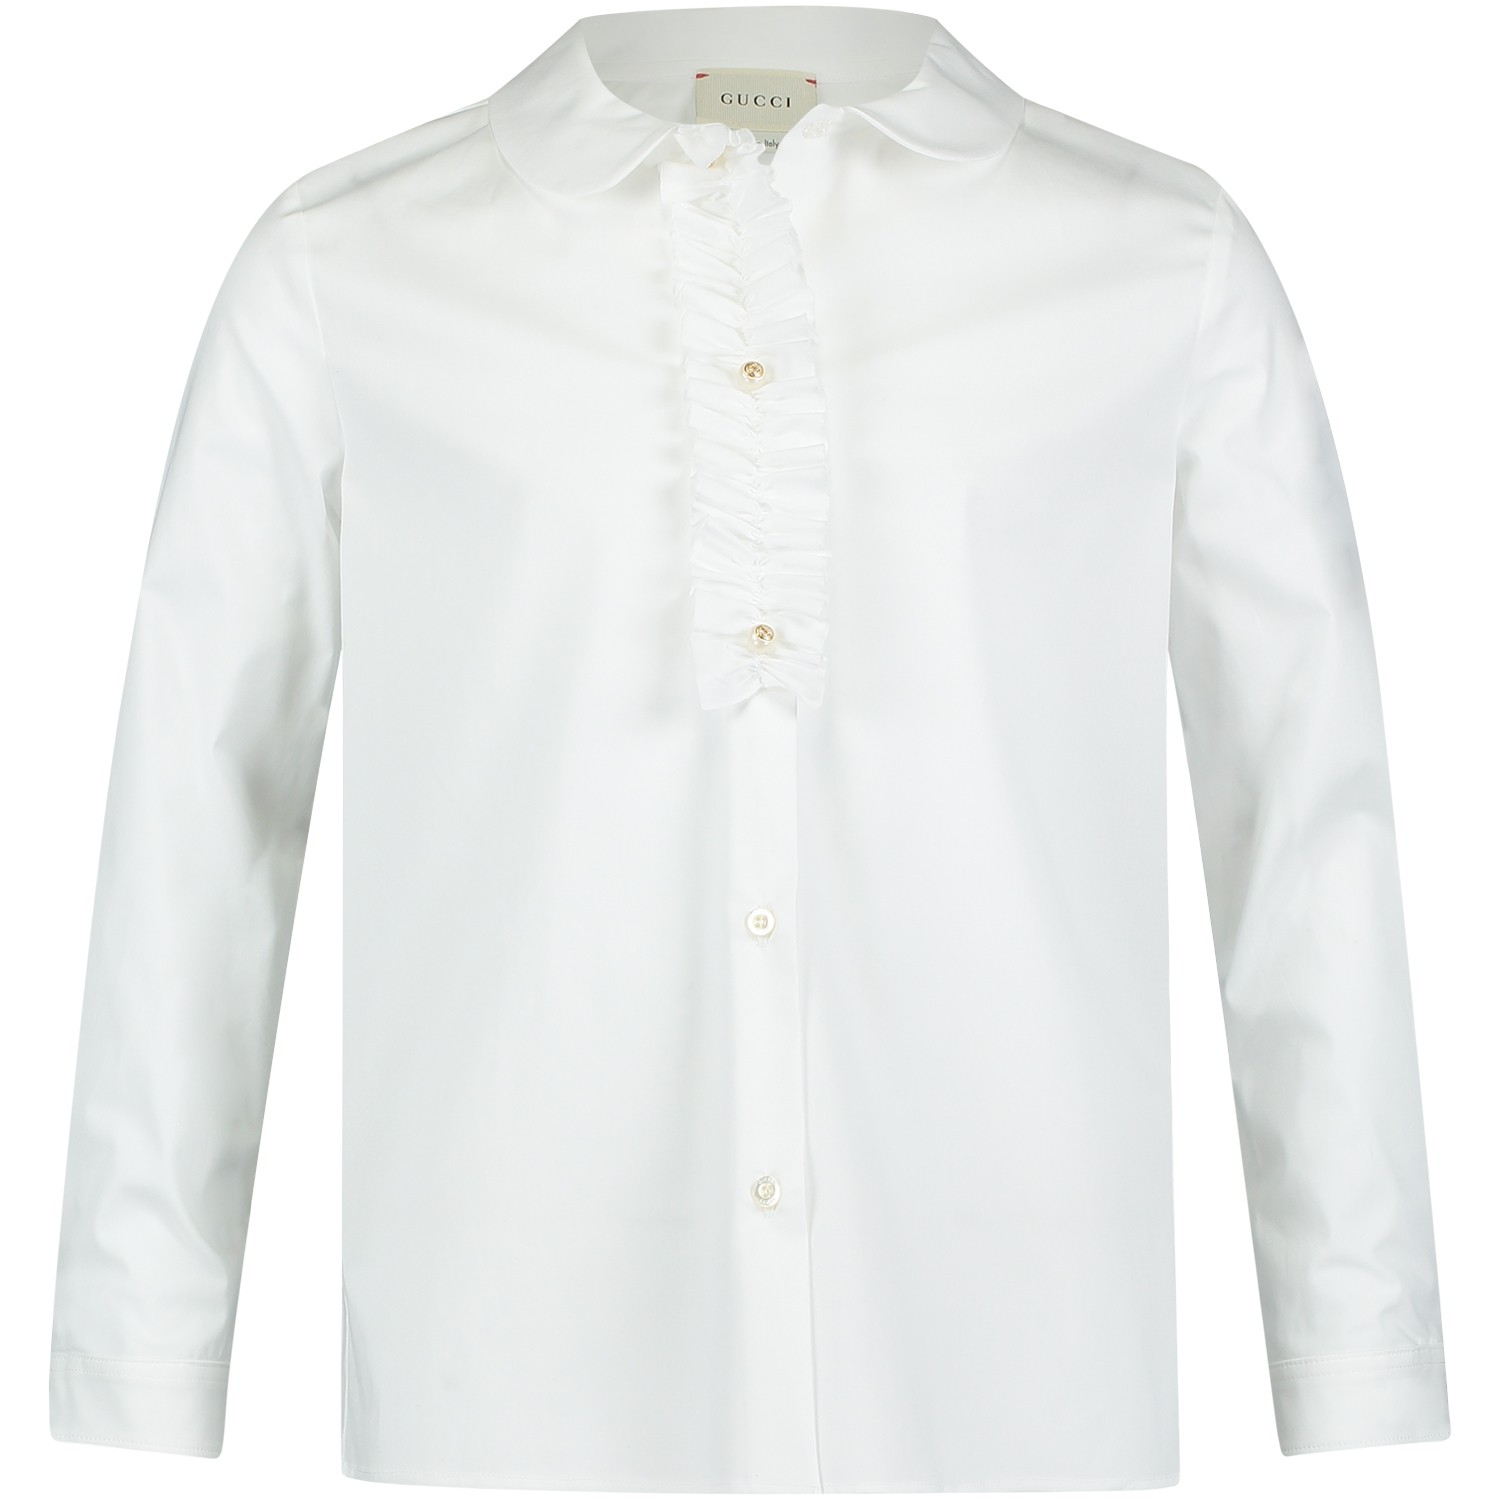 Picture of Gucci 477744 Kids blouse white